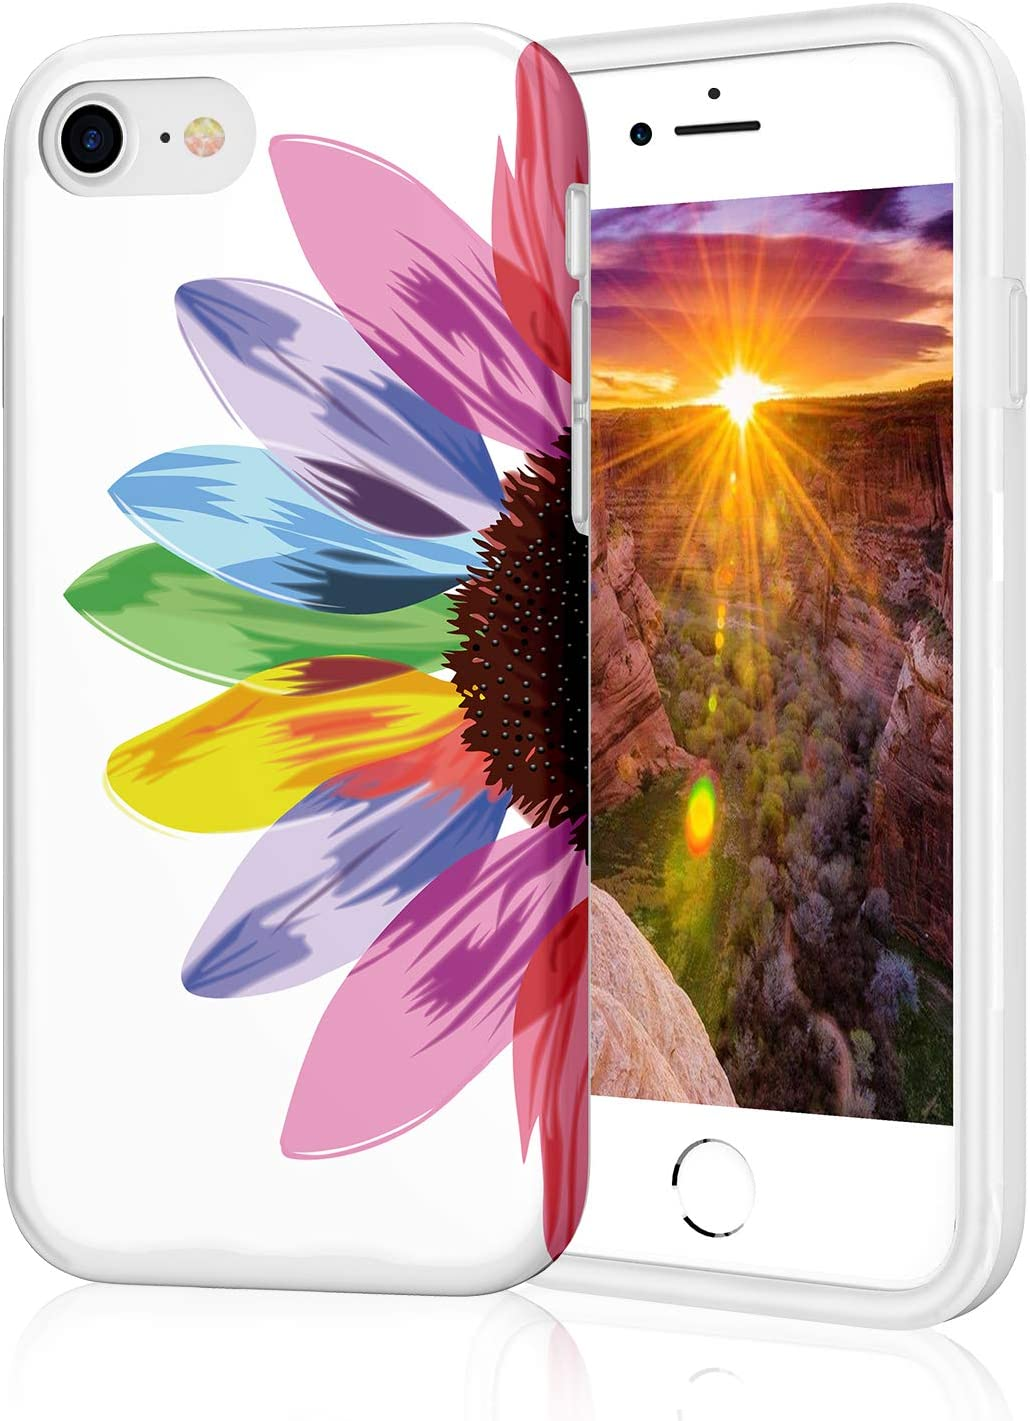 ZQ-Link iPhone 8 Case, iPhone 7 Case for Girls, Stylish Slim Fit Glossy TPU Soft Rubber Silicone Cover Phone Case iPhone 7 / iPhone 8 / iPhone SE2 Seven Color Rainbow Flower